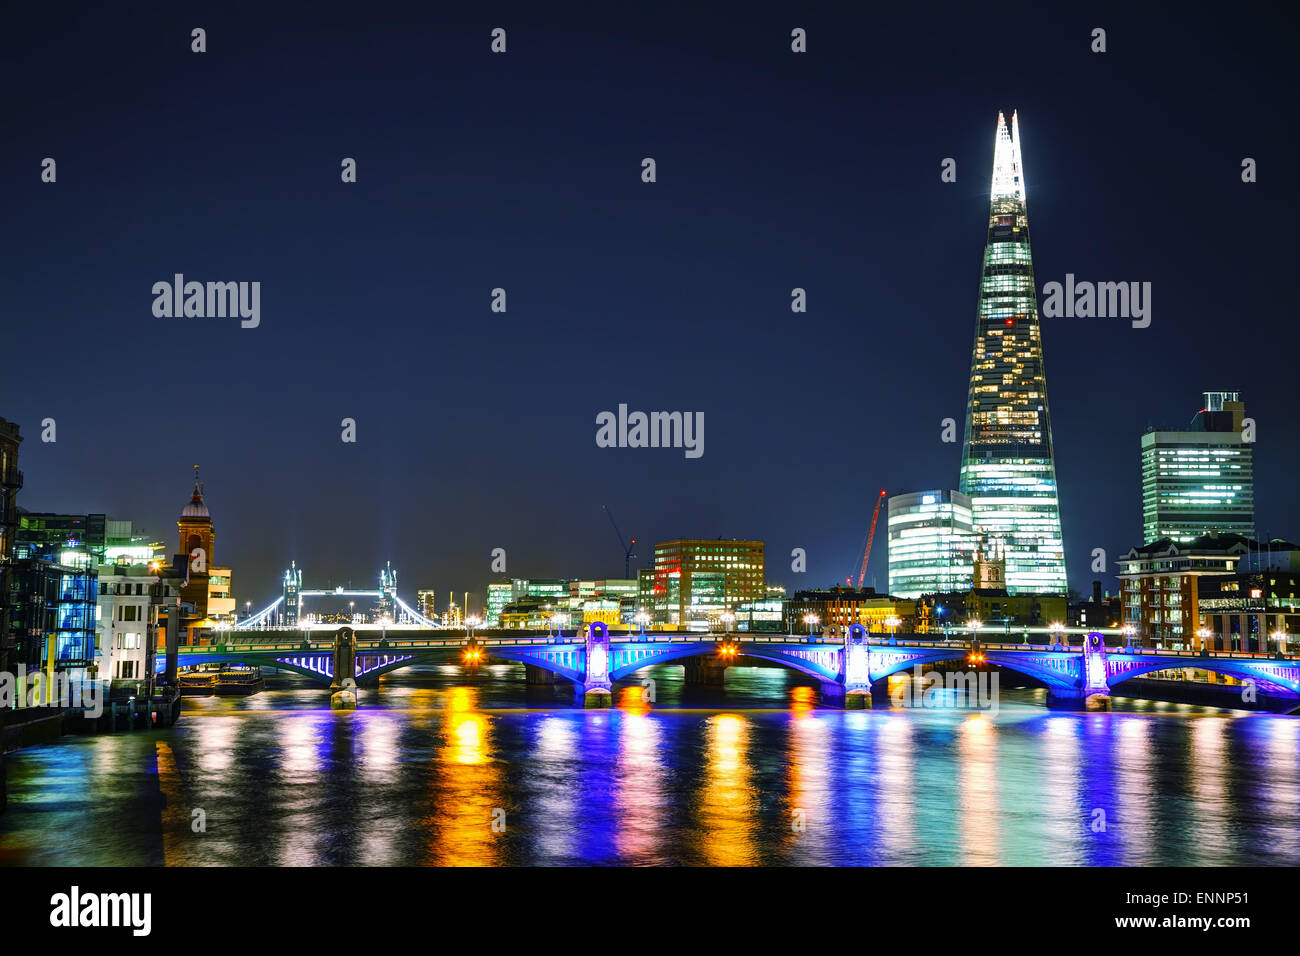 LONDON - APRIL 4: Overview of London with the Shard of Glass on April 4, 2015 in London, UK. - Stock Image